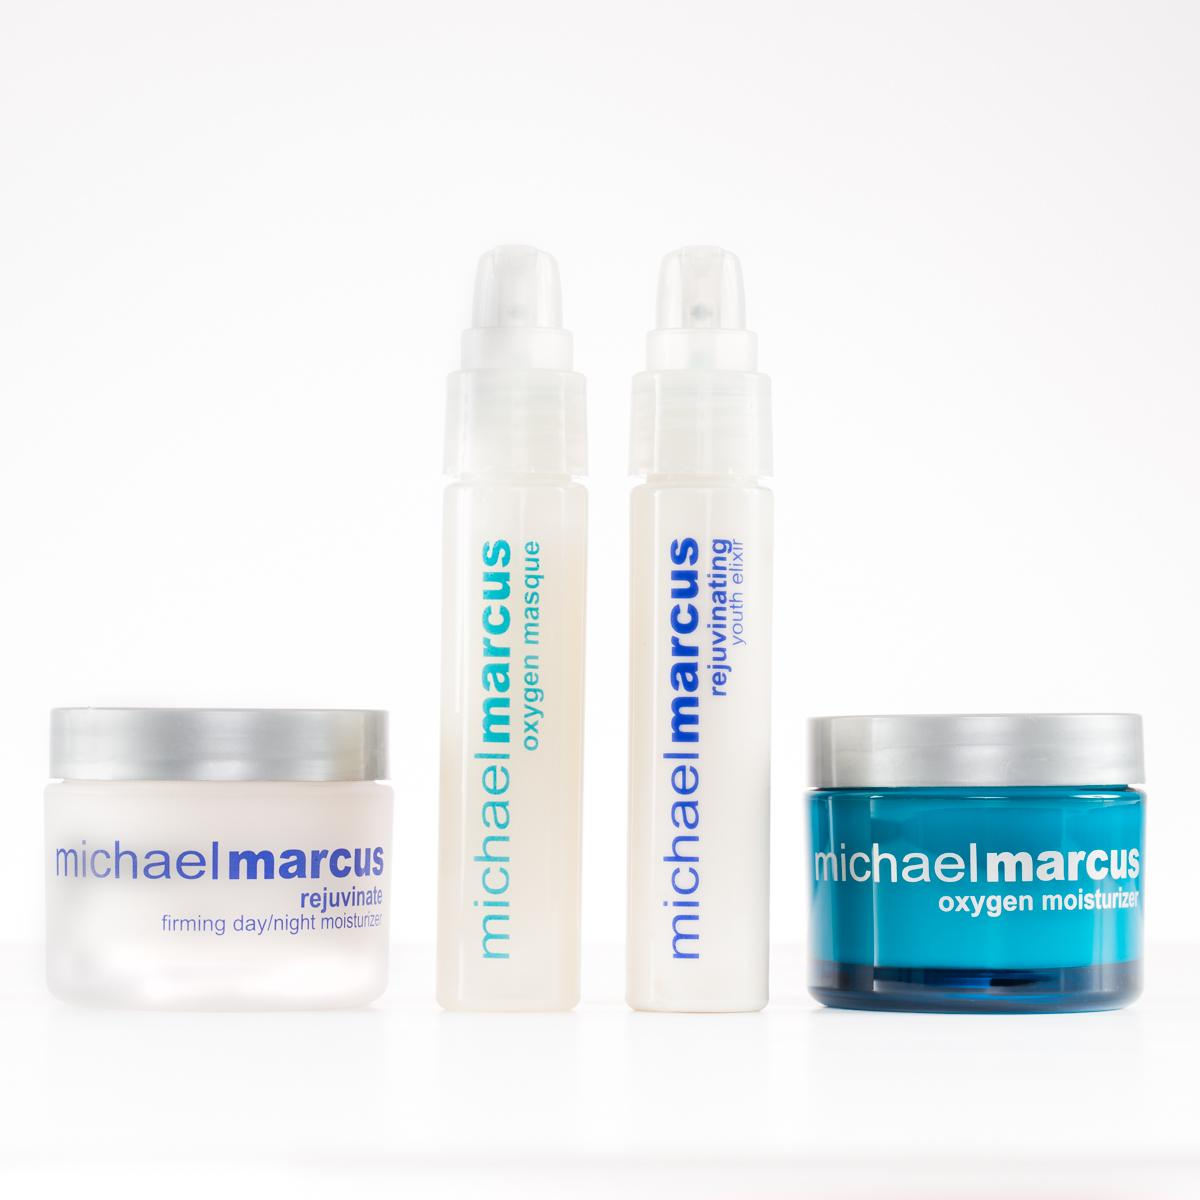 Michael Marcus Firming and Brightening 4 Piece